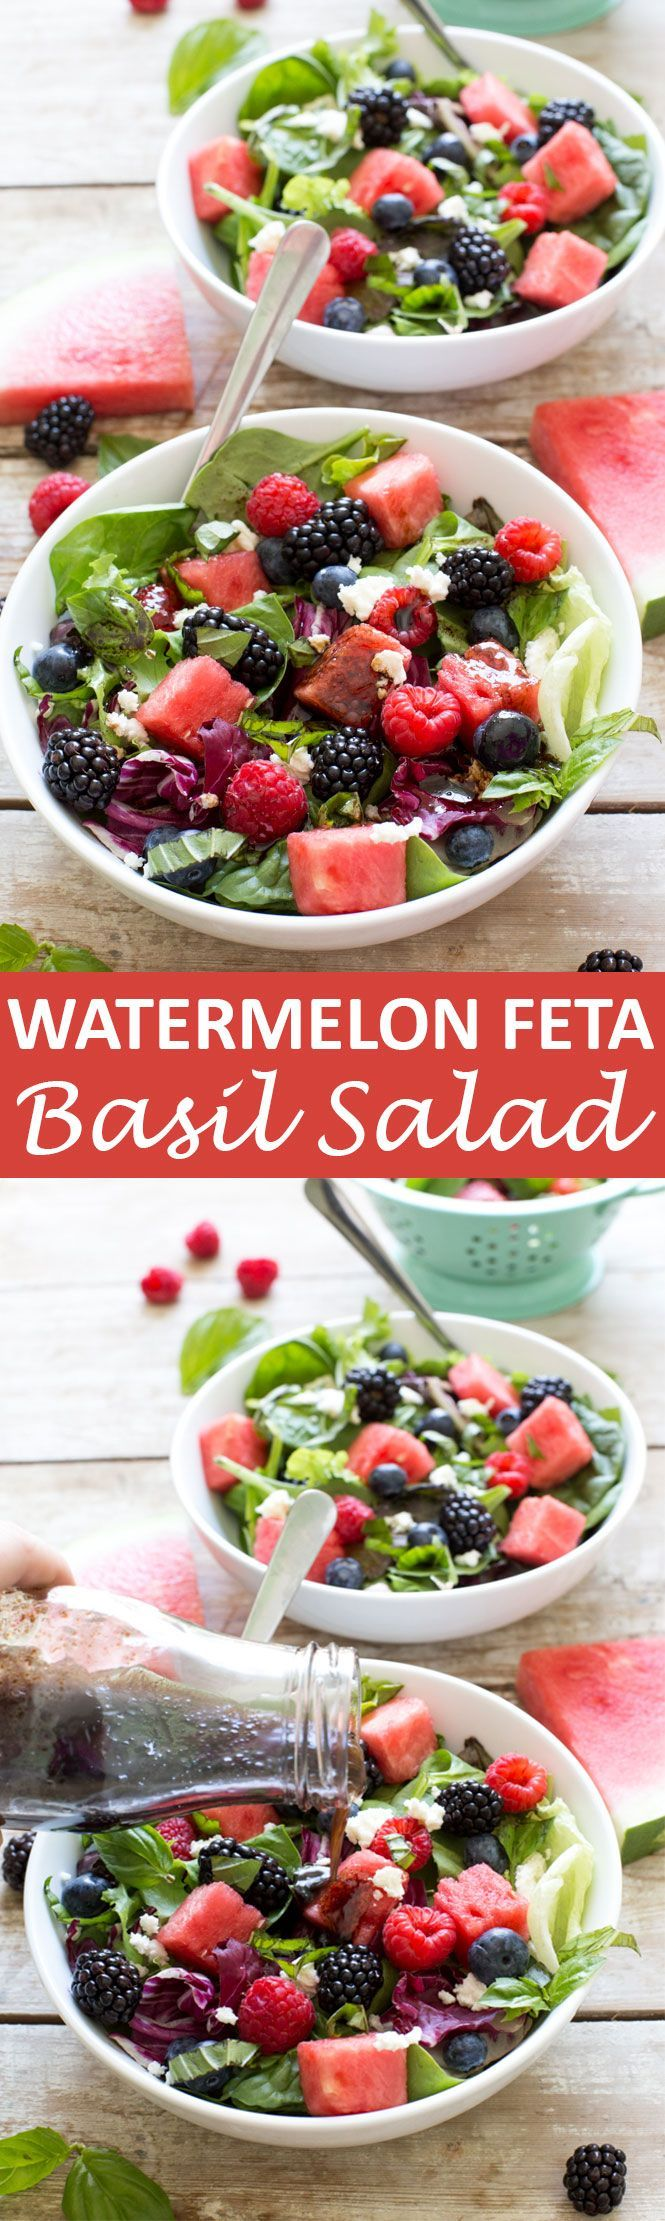 Watermelon Feta Salad loaded with tons of fresh berries and basil. Drizzled with a Simple Balsamic Vinaigrette. A light and refreshing summer salad! | http://chefsavvy.com